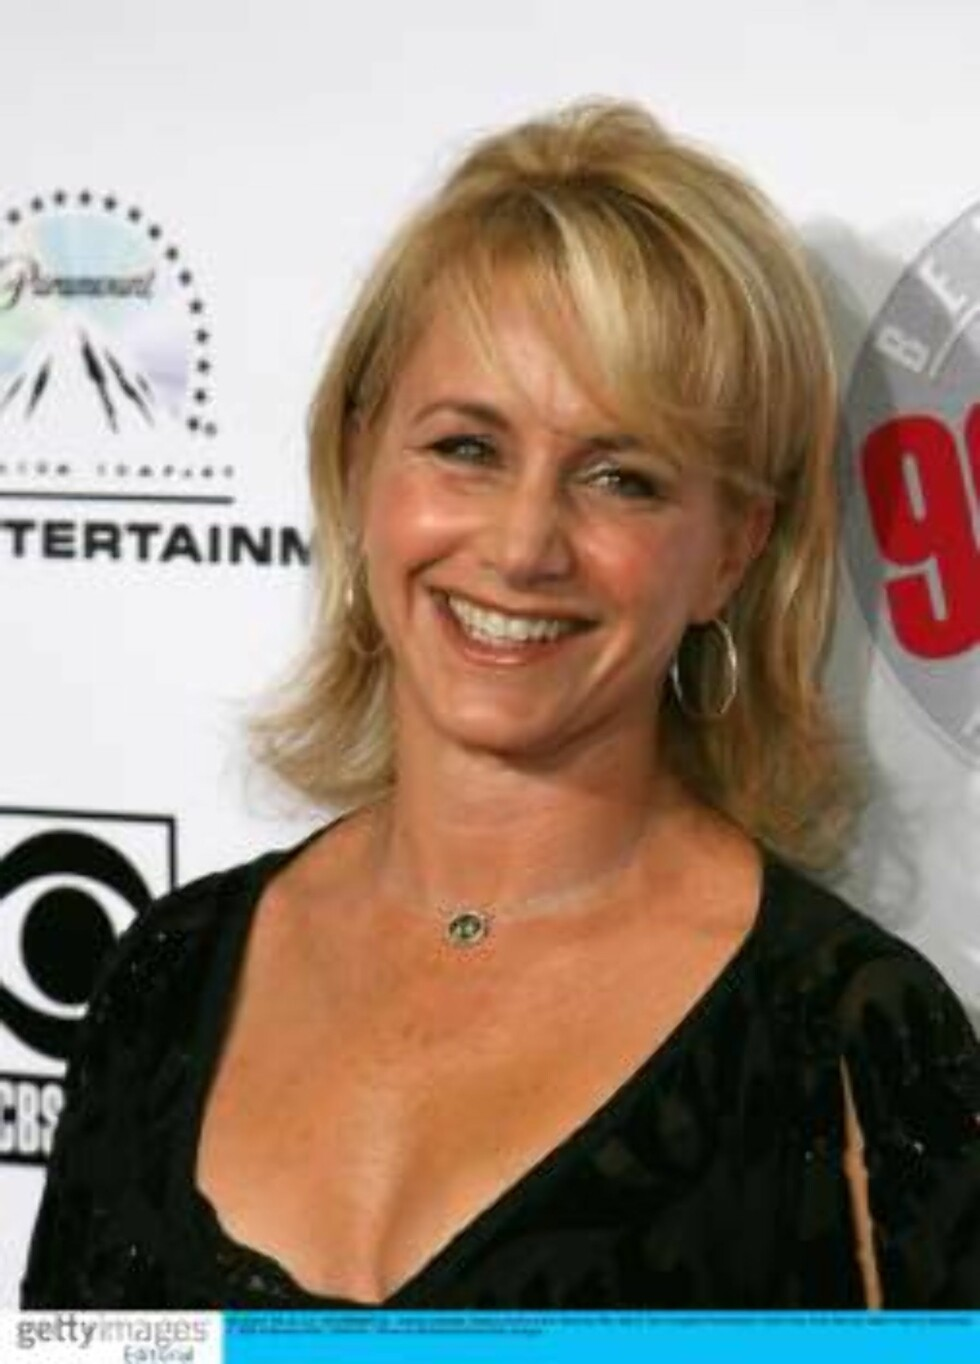 """BEVERLY HILLS, CA - NOVEMBER 03:  Actress Gabrielle Carteris arrives at the """"Beverly Hills, 90210 The Complete First Season"""" DVD Party at the Beverly Hilton Hotel on November 3, 2006 in Beverly Hillls, California.  (Photo by Michael Buckner/Getty Images) Foto: All Over Press"""